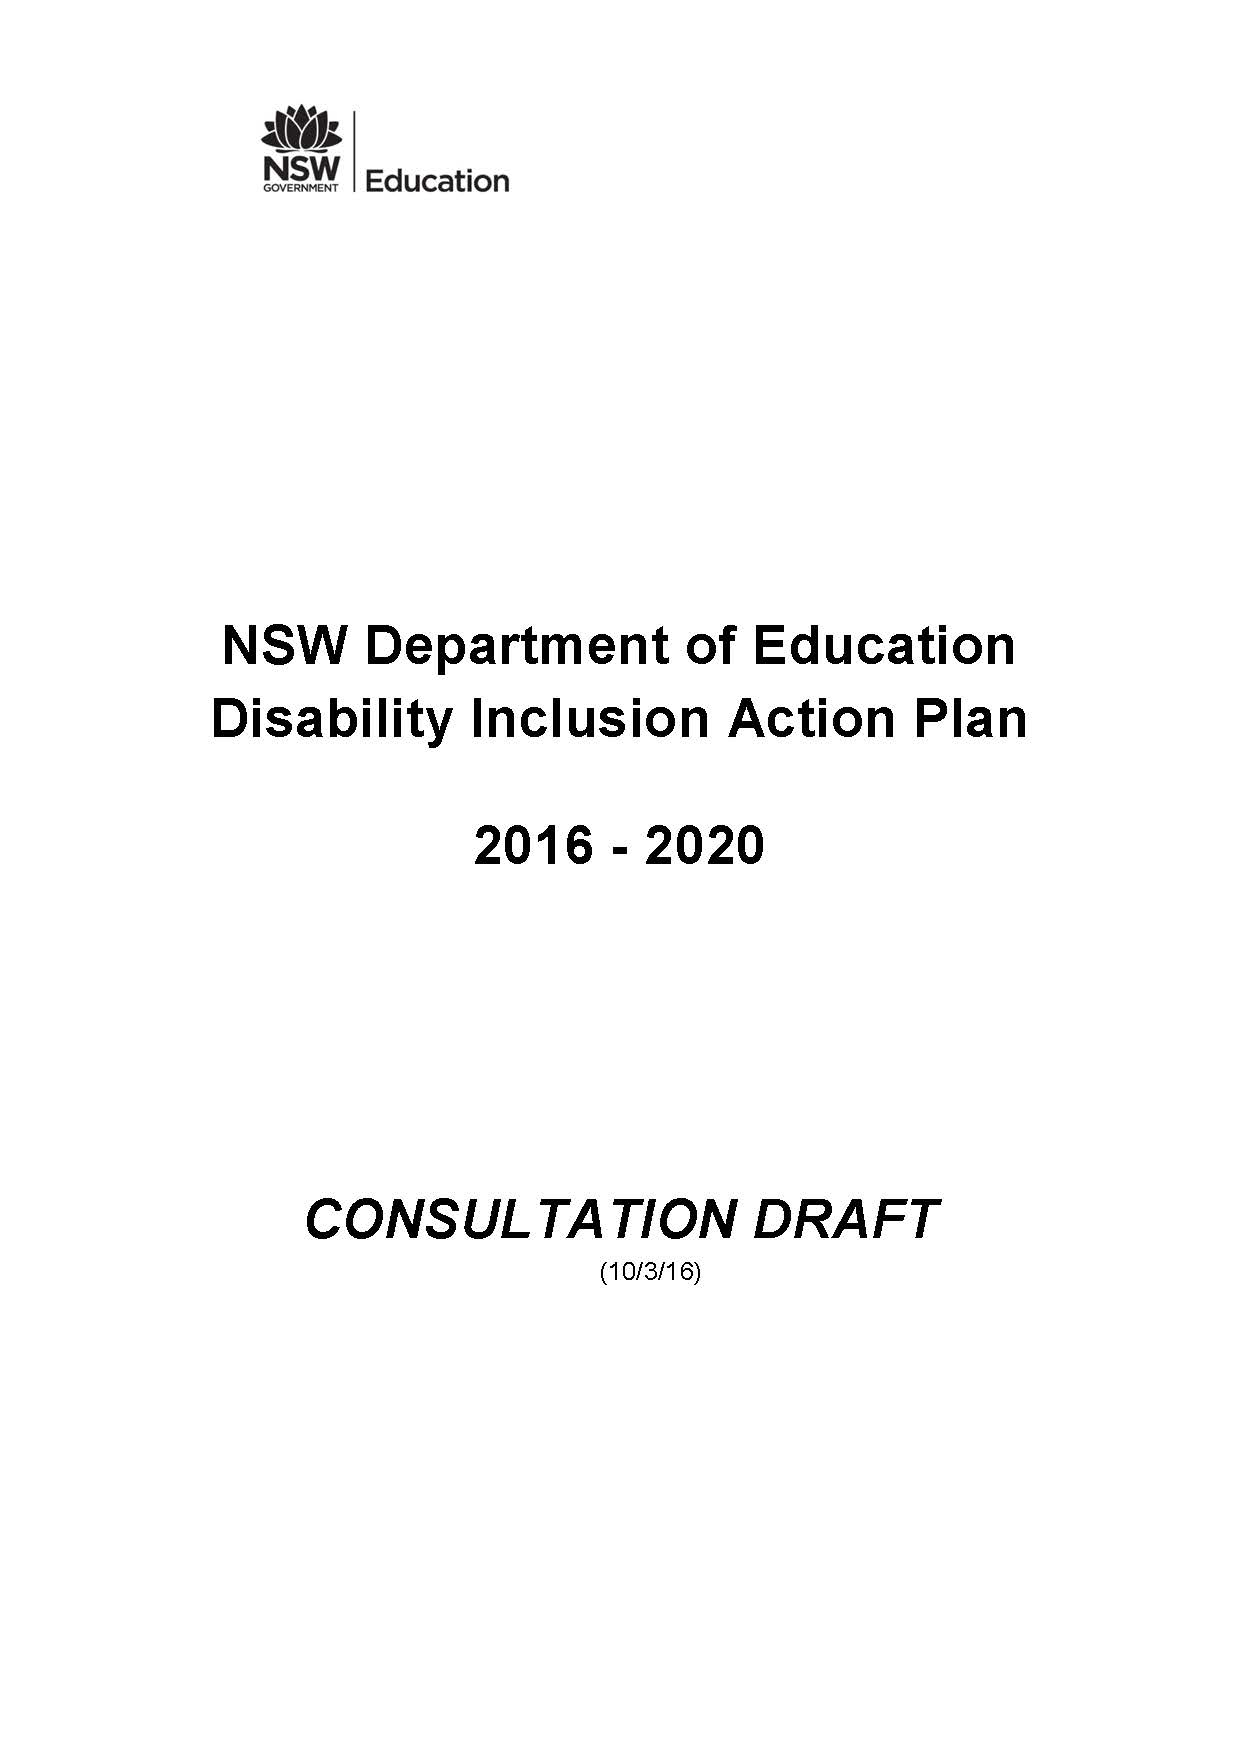 NSW Department of Education Disability Inclusion Action Plan